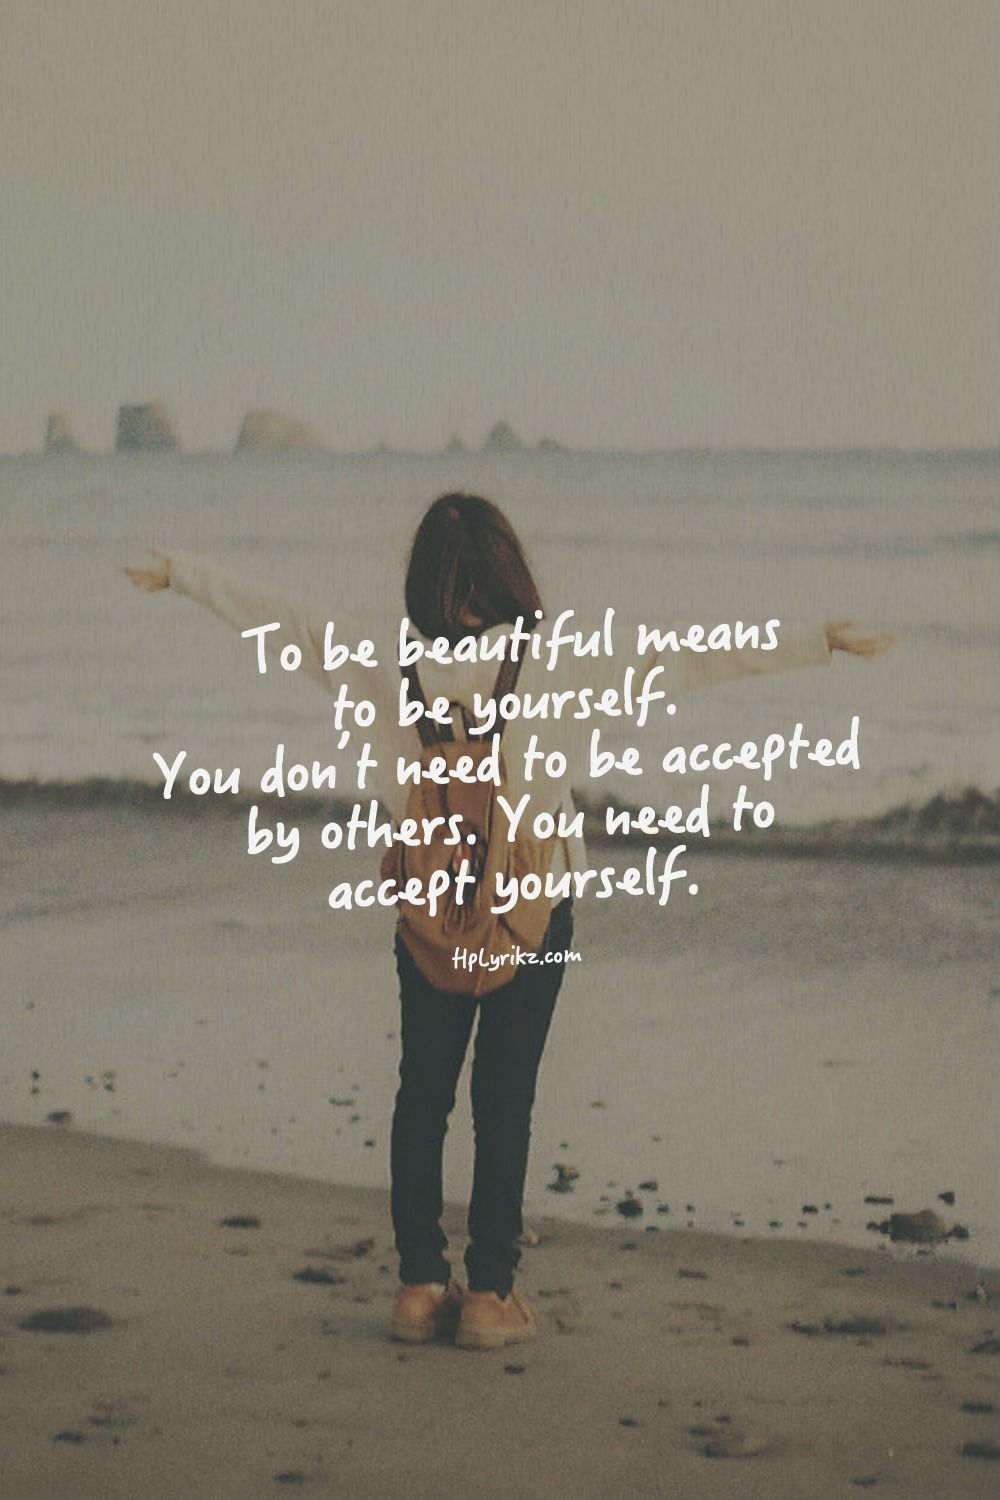 To be beautiful is to be yourself. Quotes Pinterest